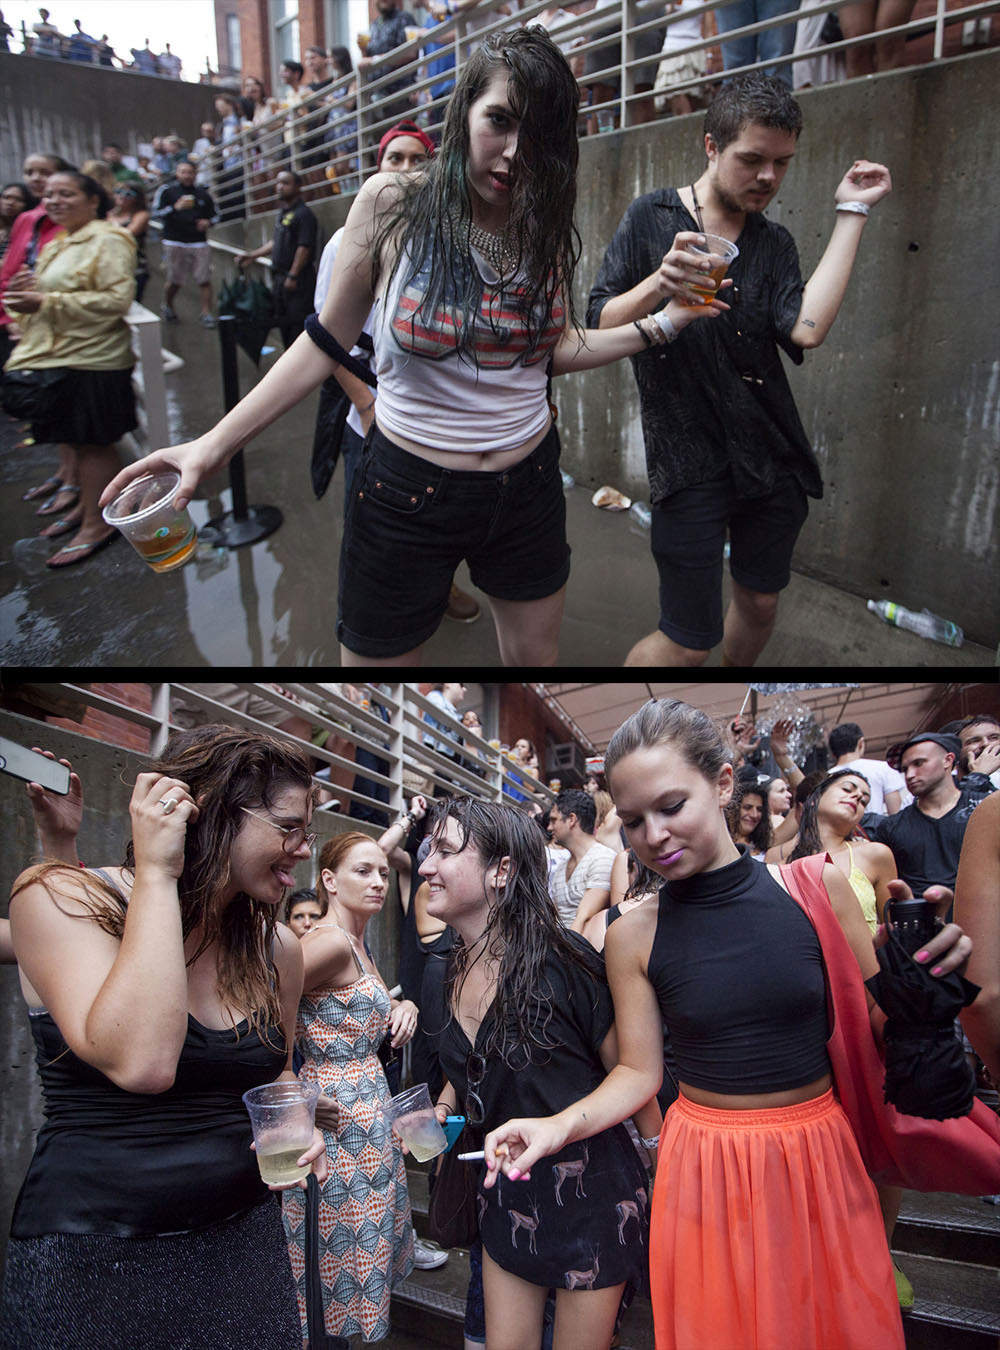 Crowd at MoMA PS1 Warm Up on September 8th, 2012 in New York City.Photos by David Andrako on assignment for Rolling Stone more at rollingstone.com